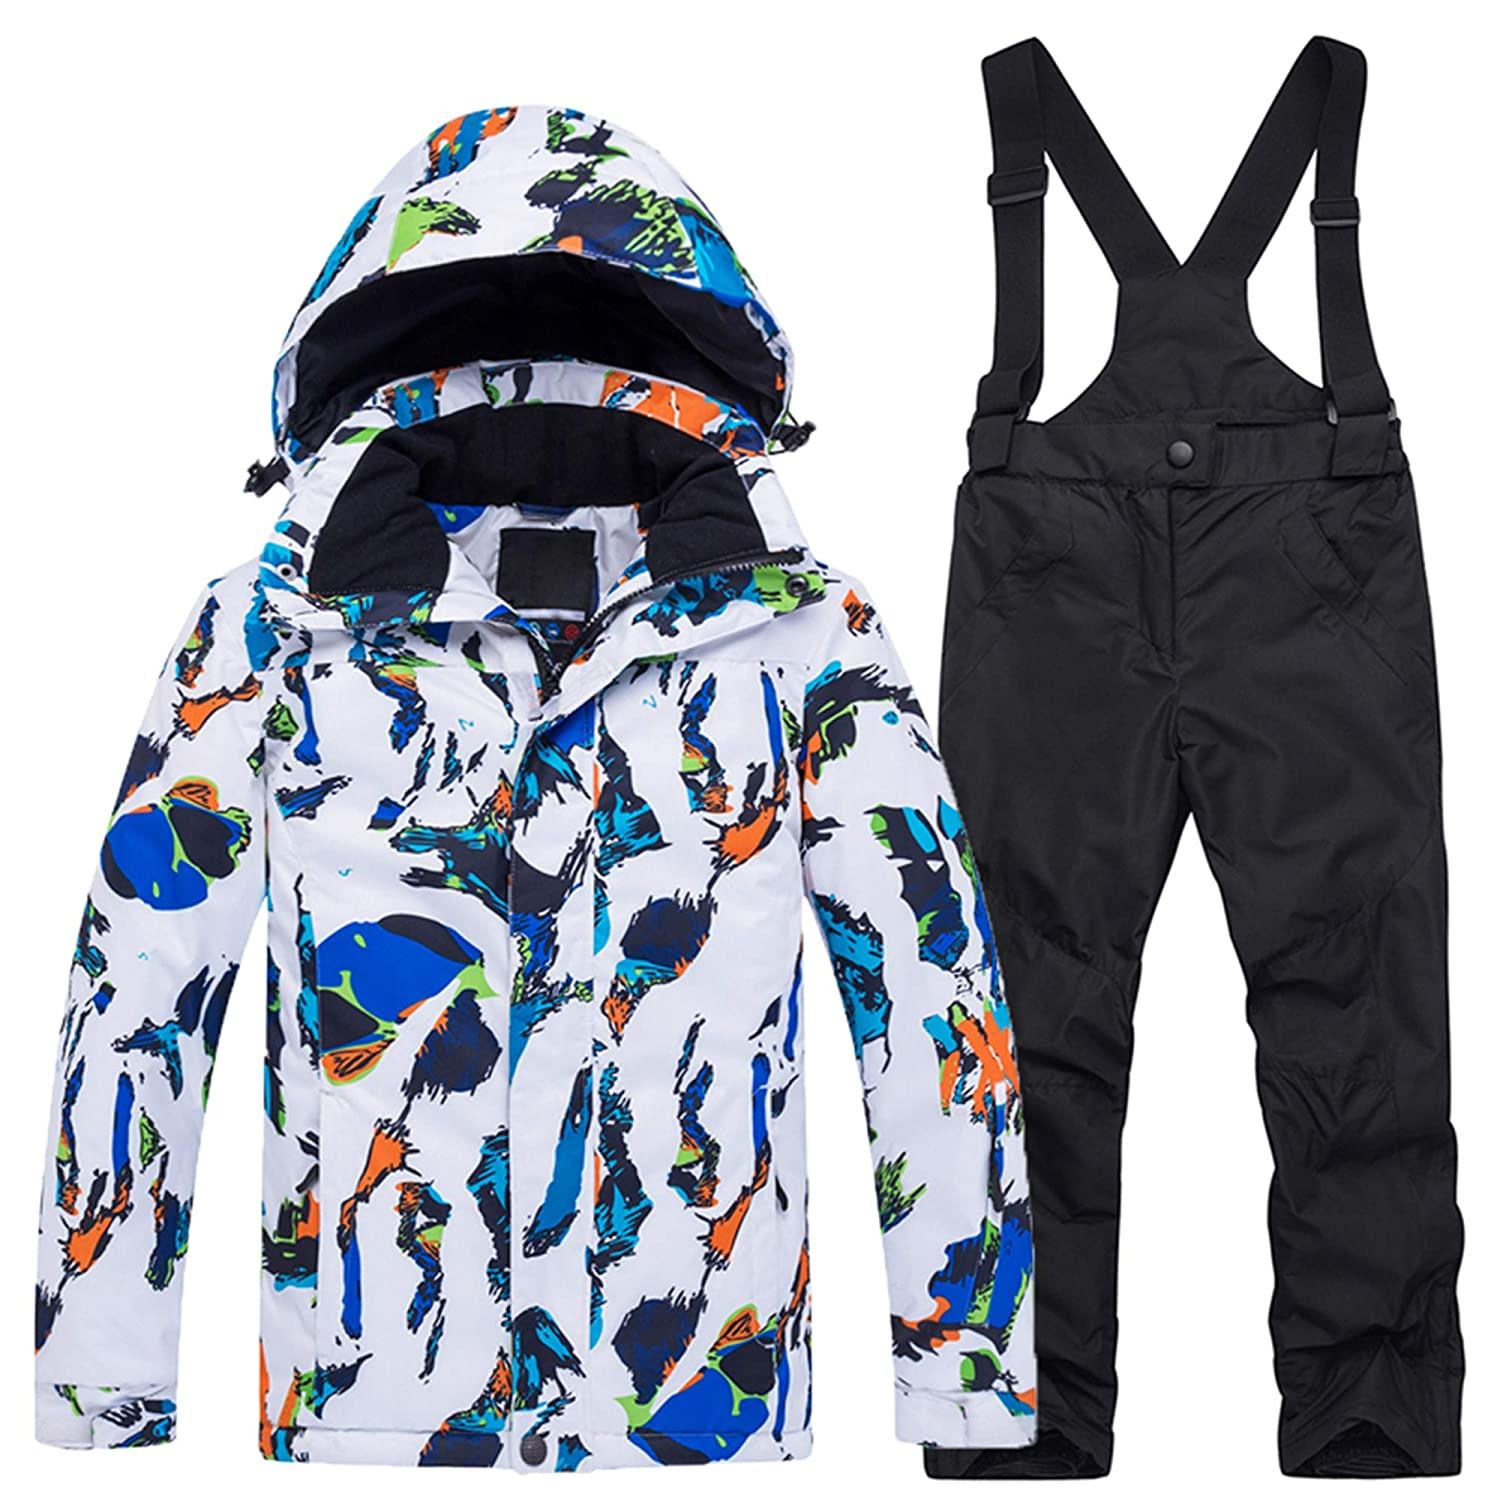 PENER Boys Thick Warm Ski Jackets and Pants Windproof Waterproof Snowsuit Set